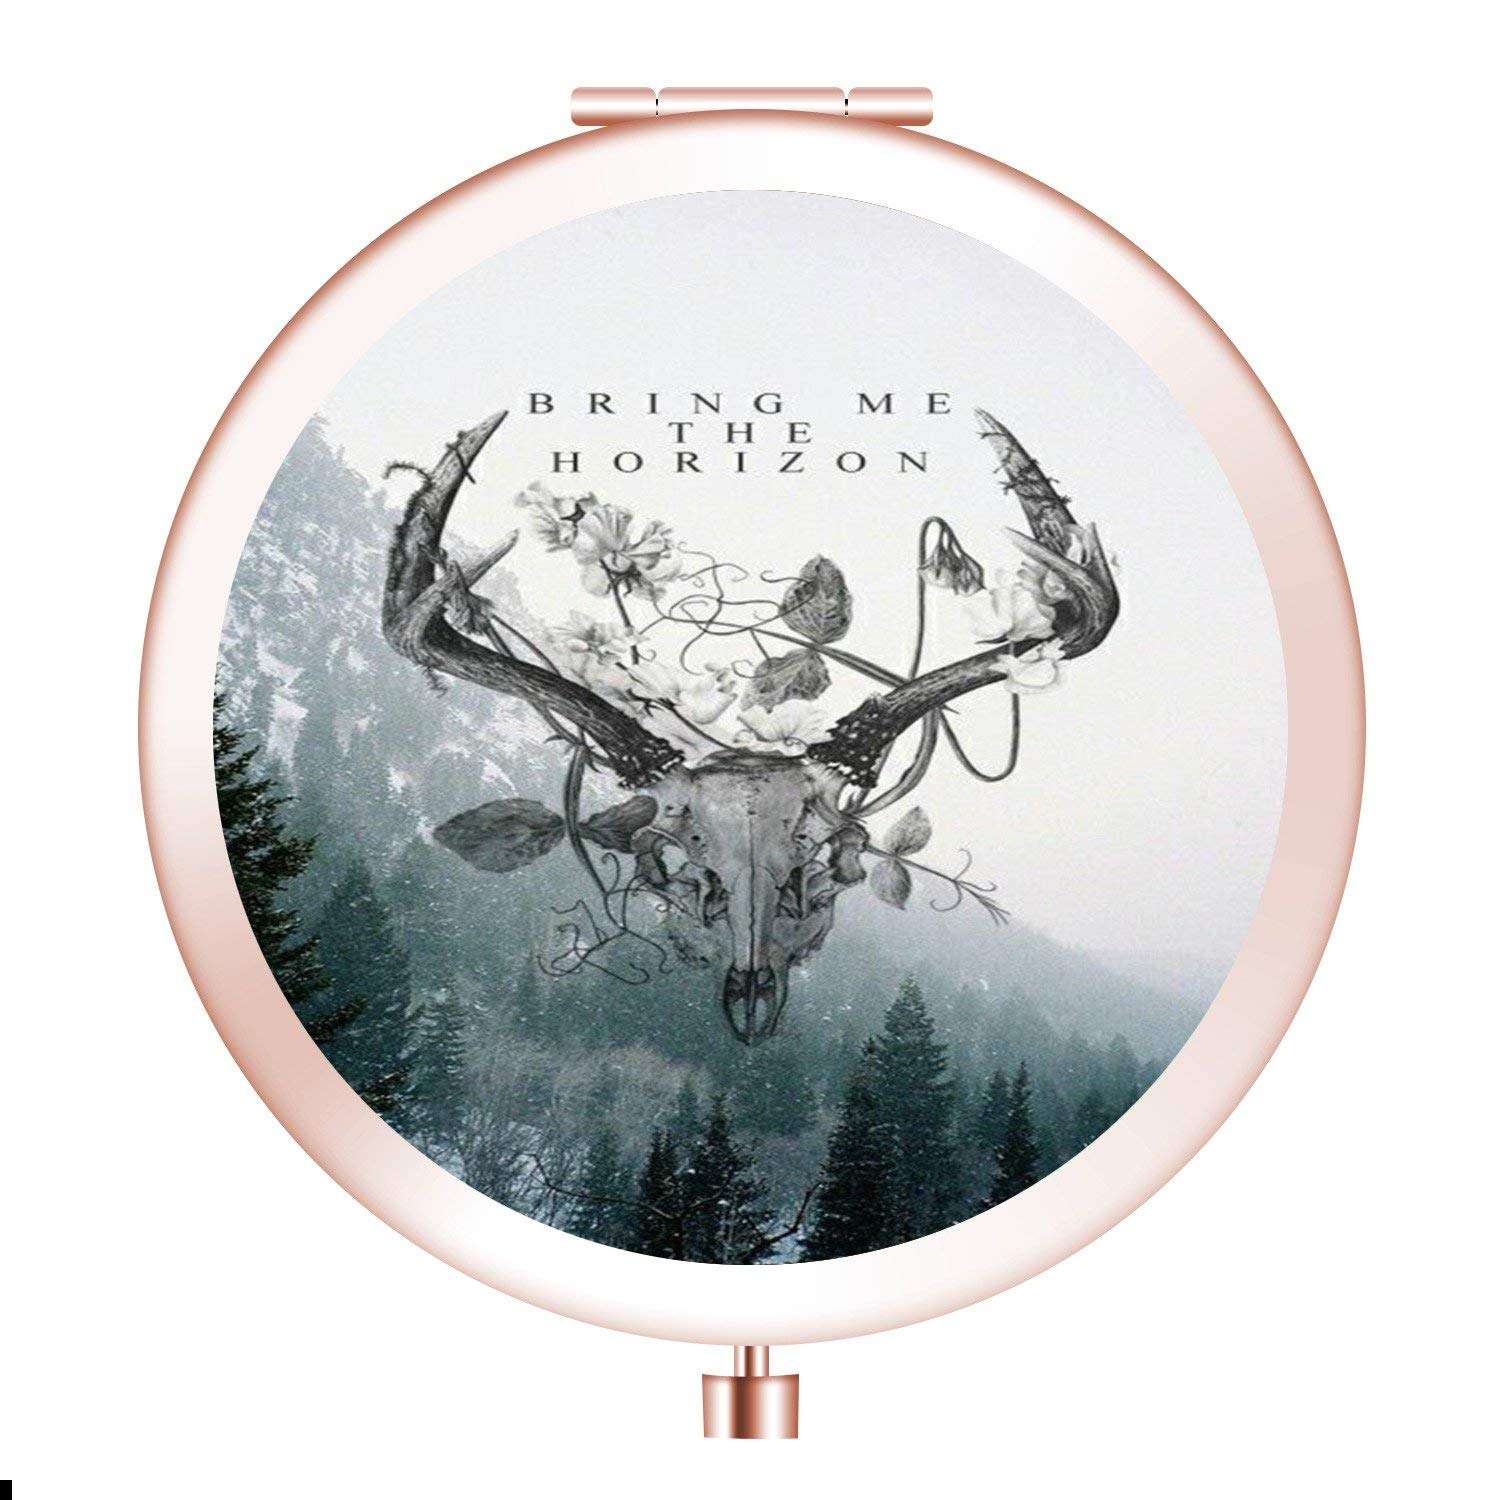 Makeup Mirror, Compact Folding Travel Mirror Double Sides - 2x & 1x Magnifying Mini Round Handhold Makeup Pocket Mirror Perfect for Beauty, Skin Care and Travel - Deer Skull12